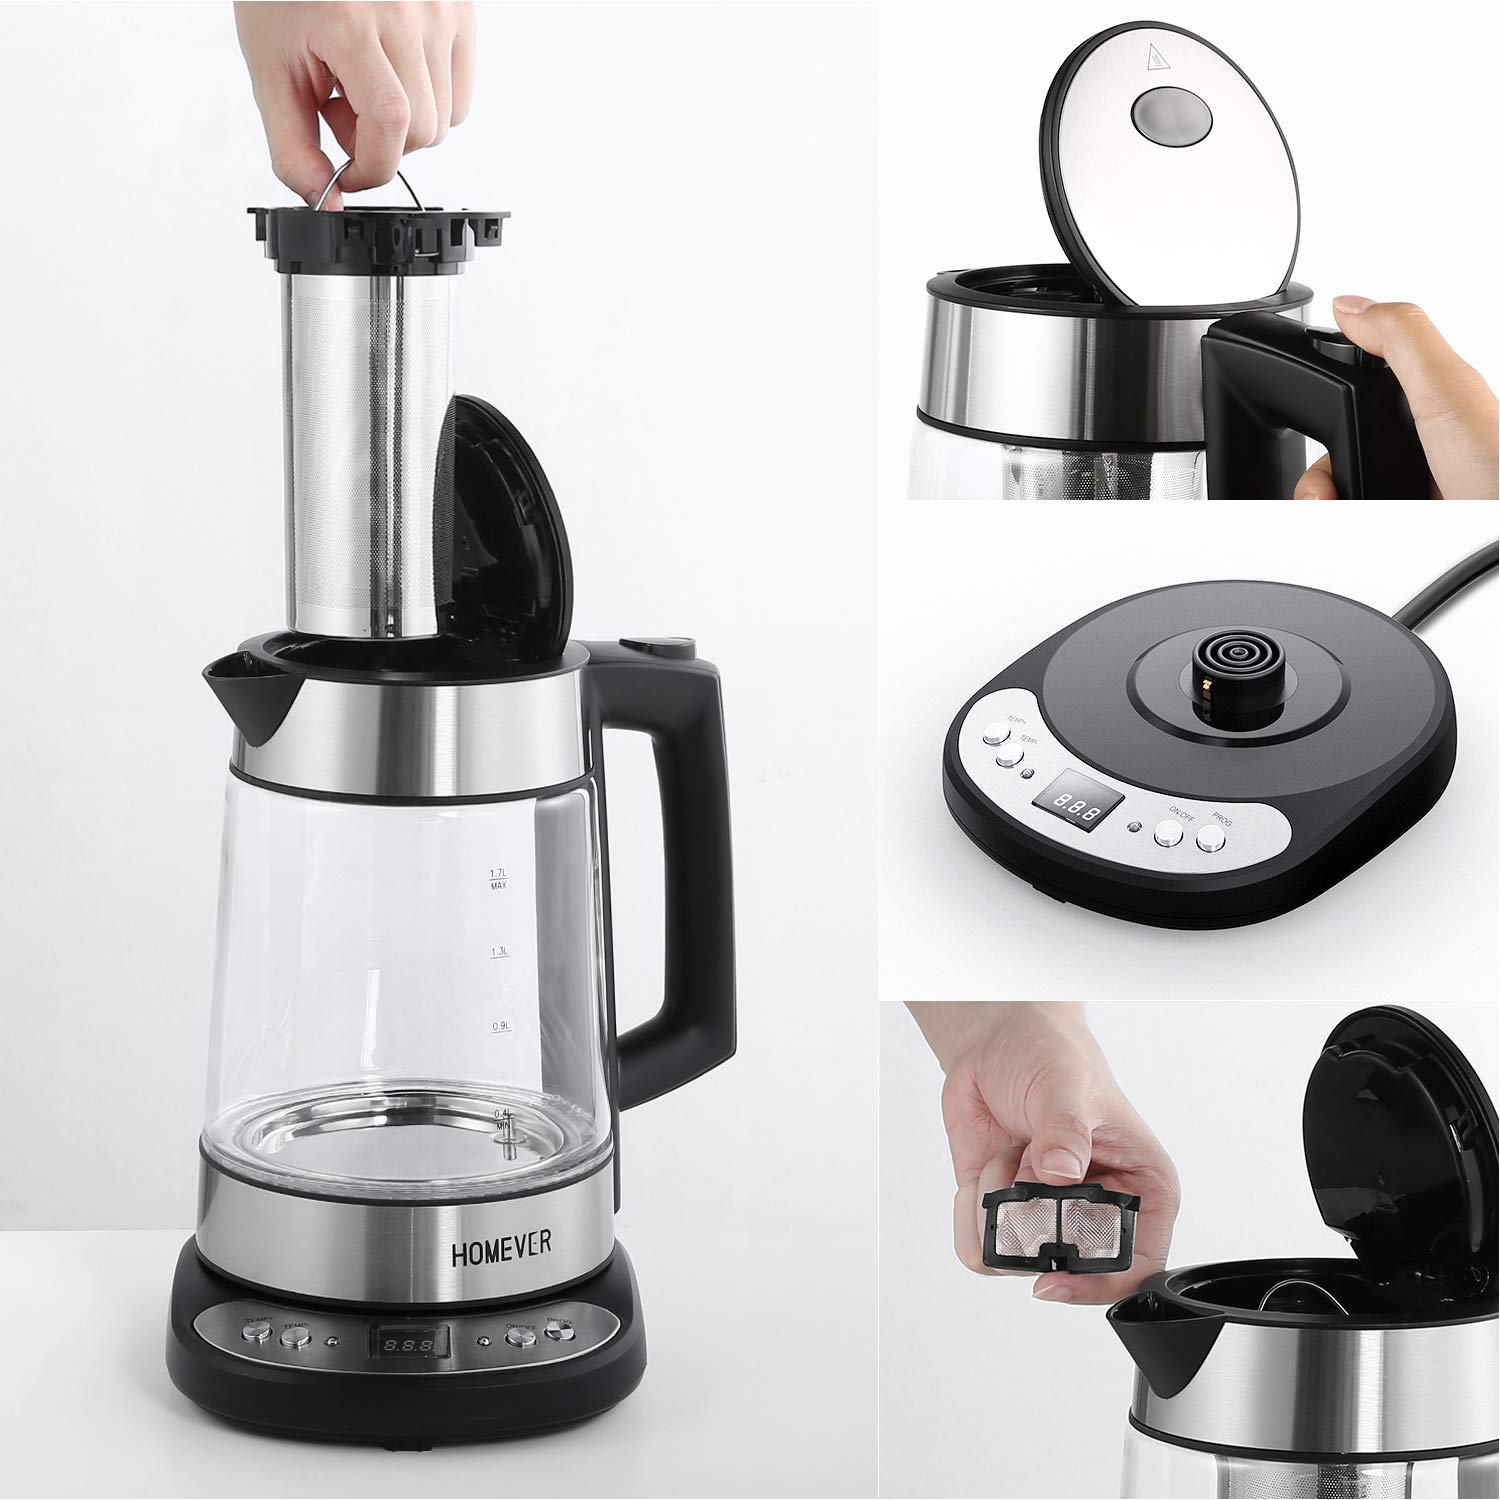 Electric Water Kettle Auto Shut-Off and Boil-Dry Protection Homever Kettle Thermostatic Kettle with Adjustable Temperature Electric Cordless Glass Kettle with Strainer 1.7L 2200W Tea Kettle